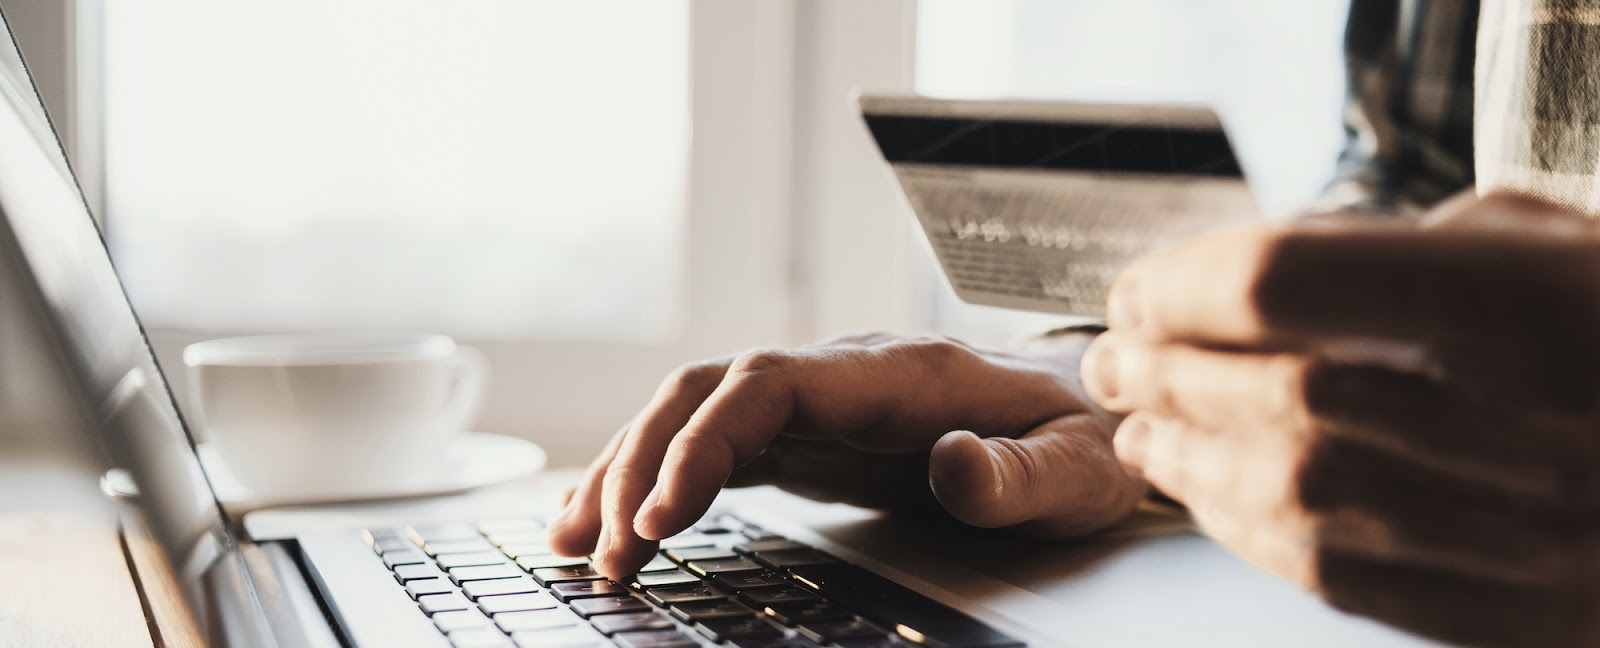 How much are credit card fees: A person holds a credit card and types on a laptop